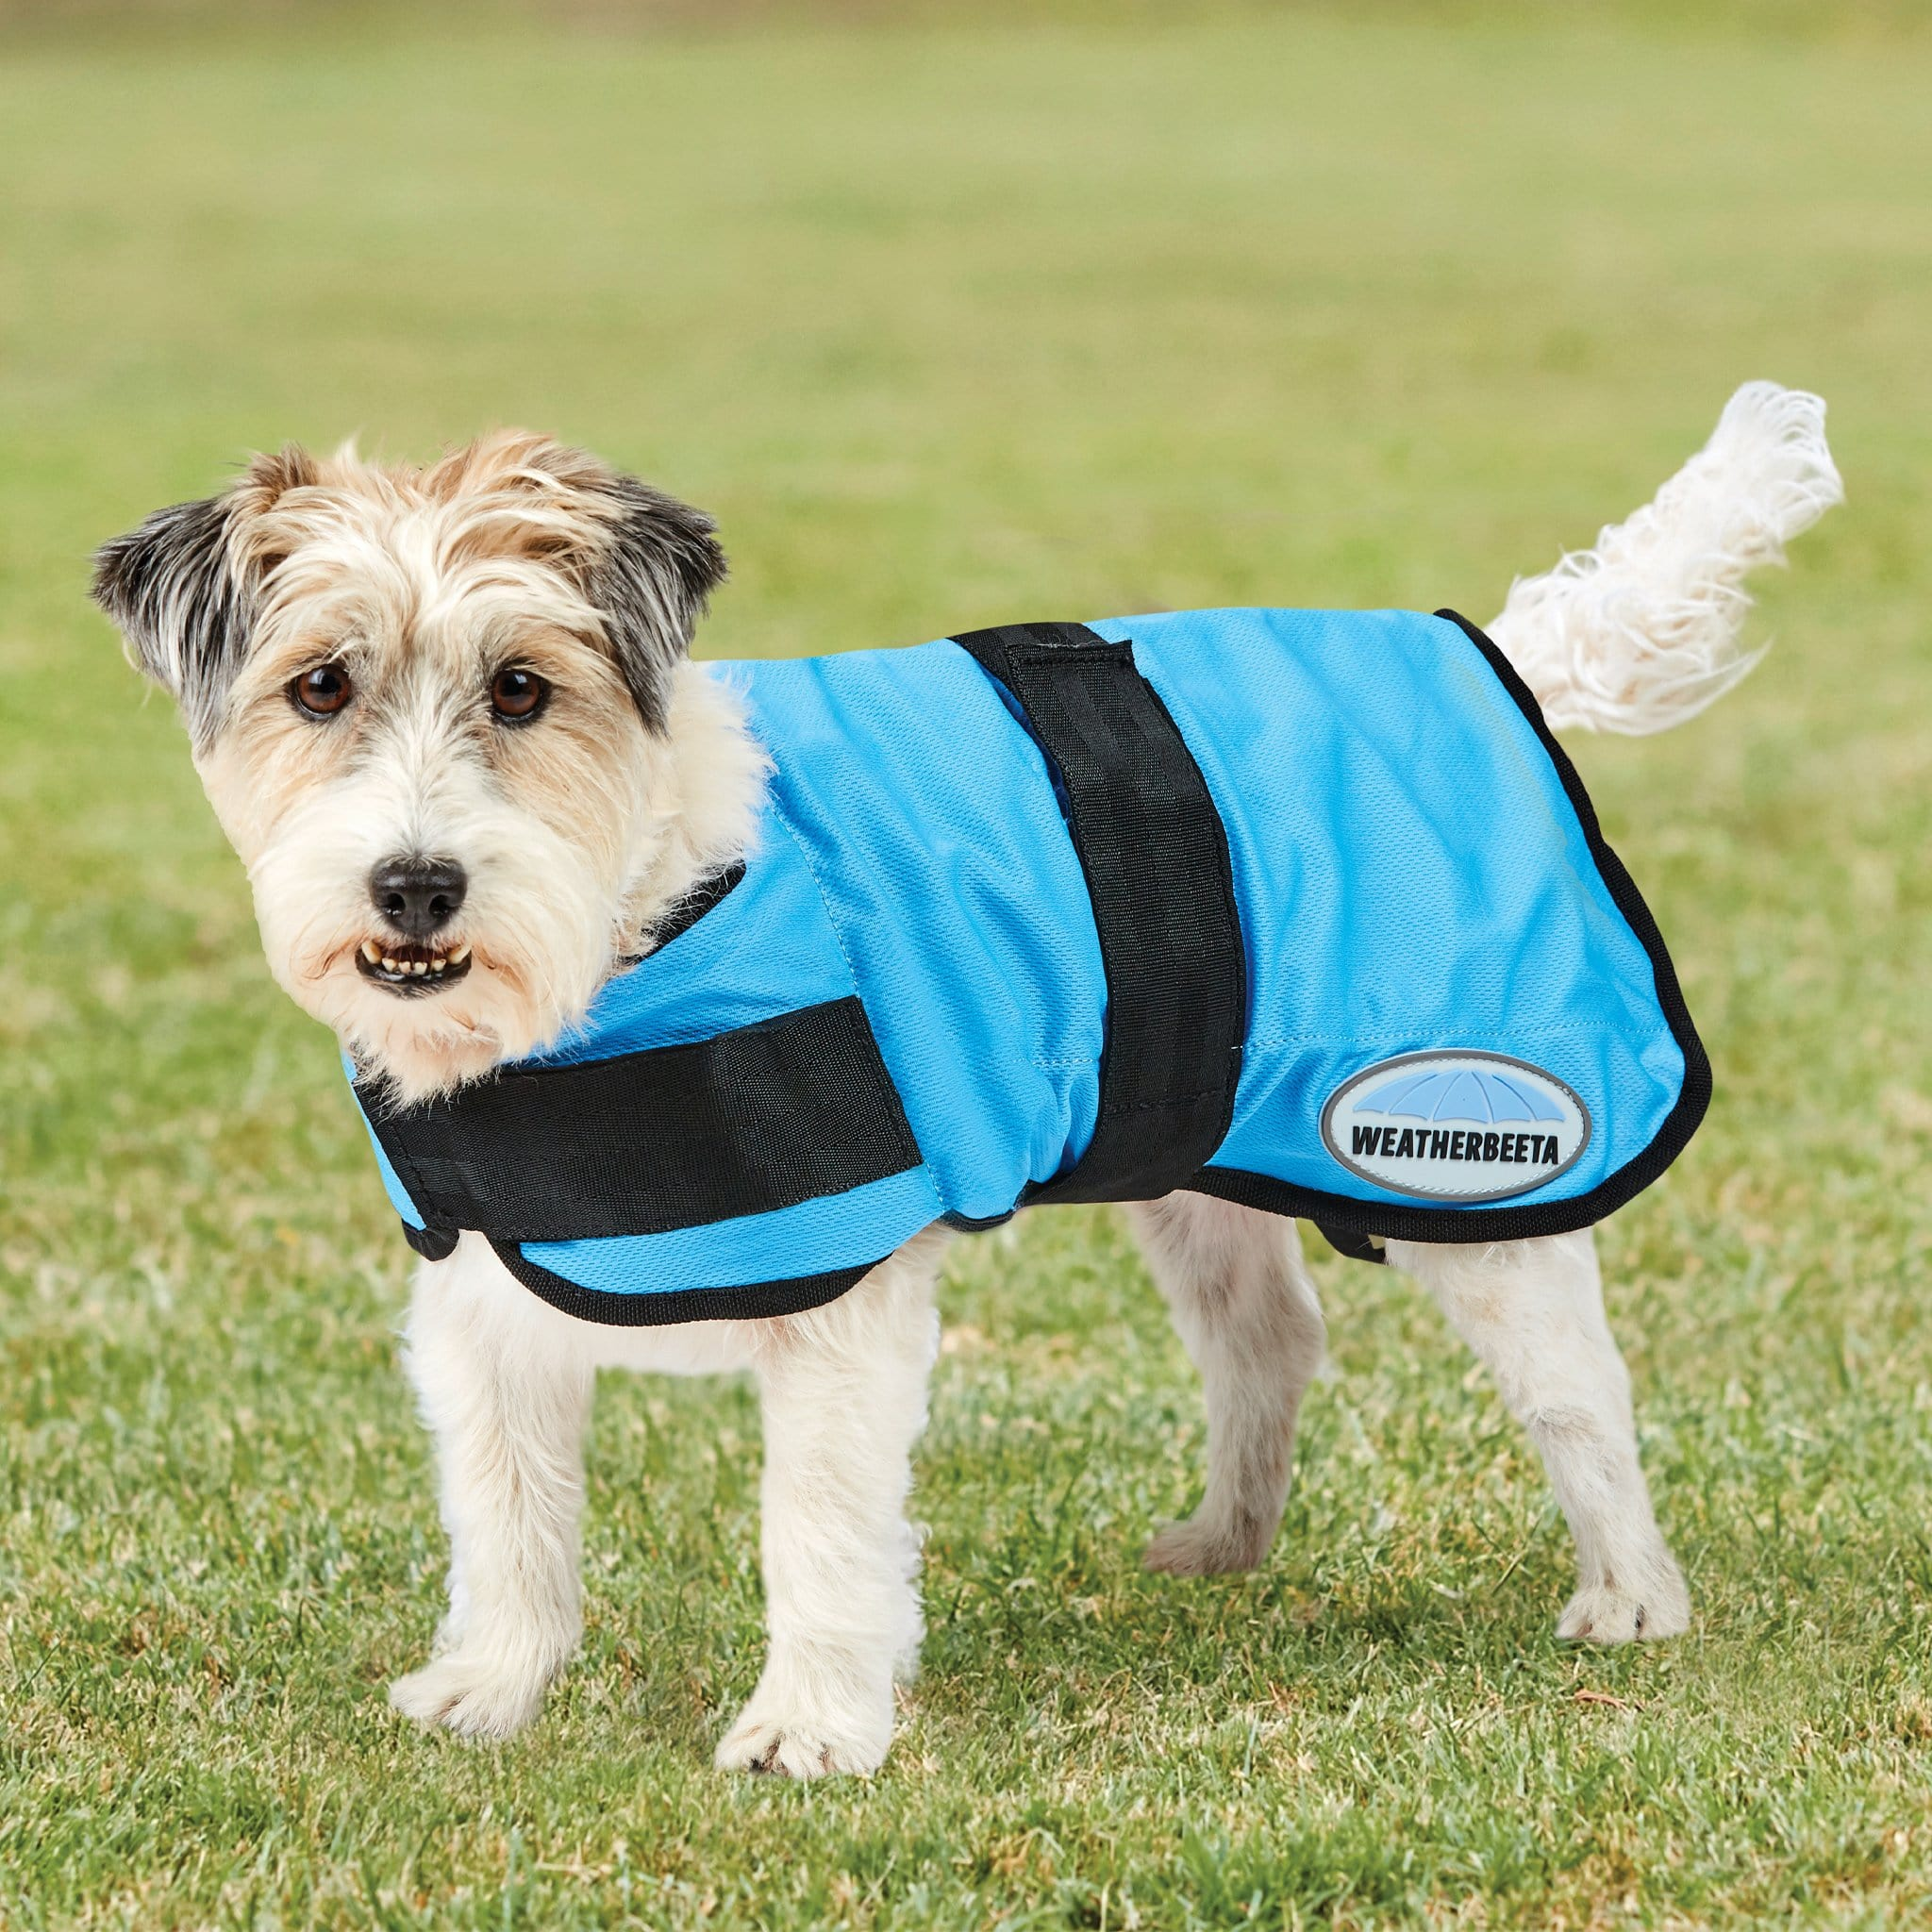 Weatherbeeta Therapy-Tec Cooling Dog Coat 1002307001 Blue On Terrier